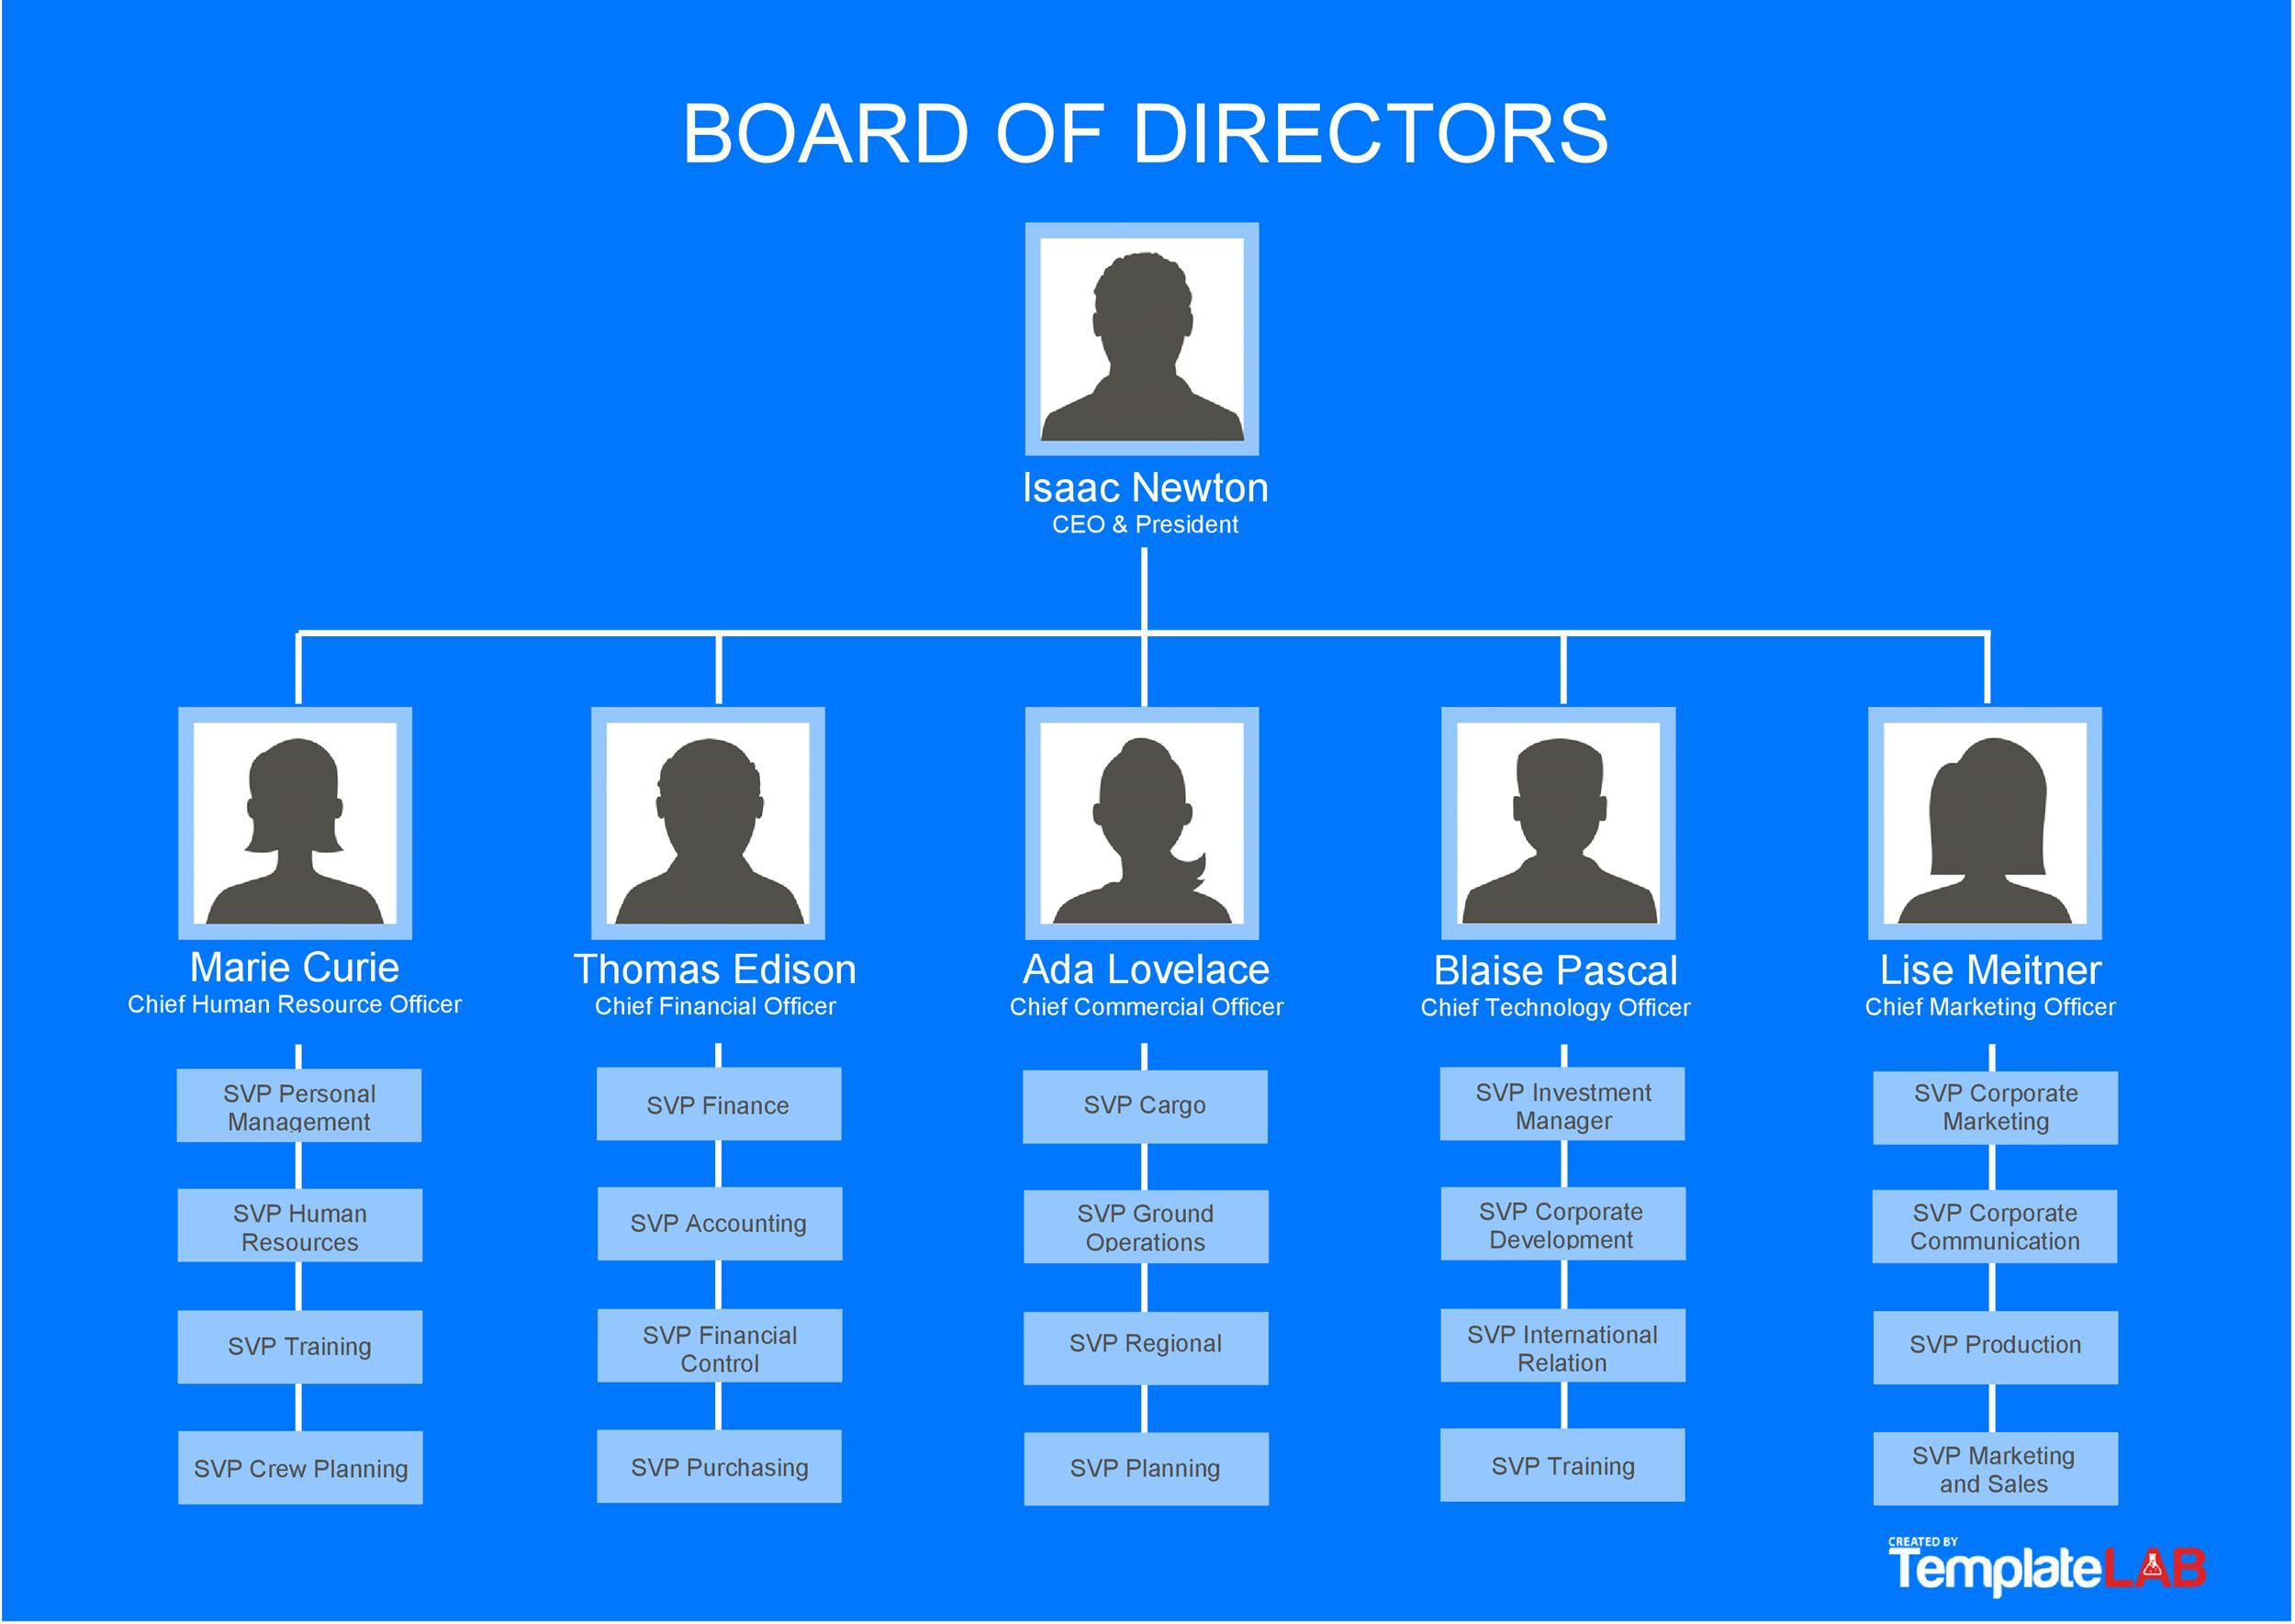 001 Stirring Organizational Chart Template Word Image  2010 2007 Free DownloadFull